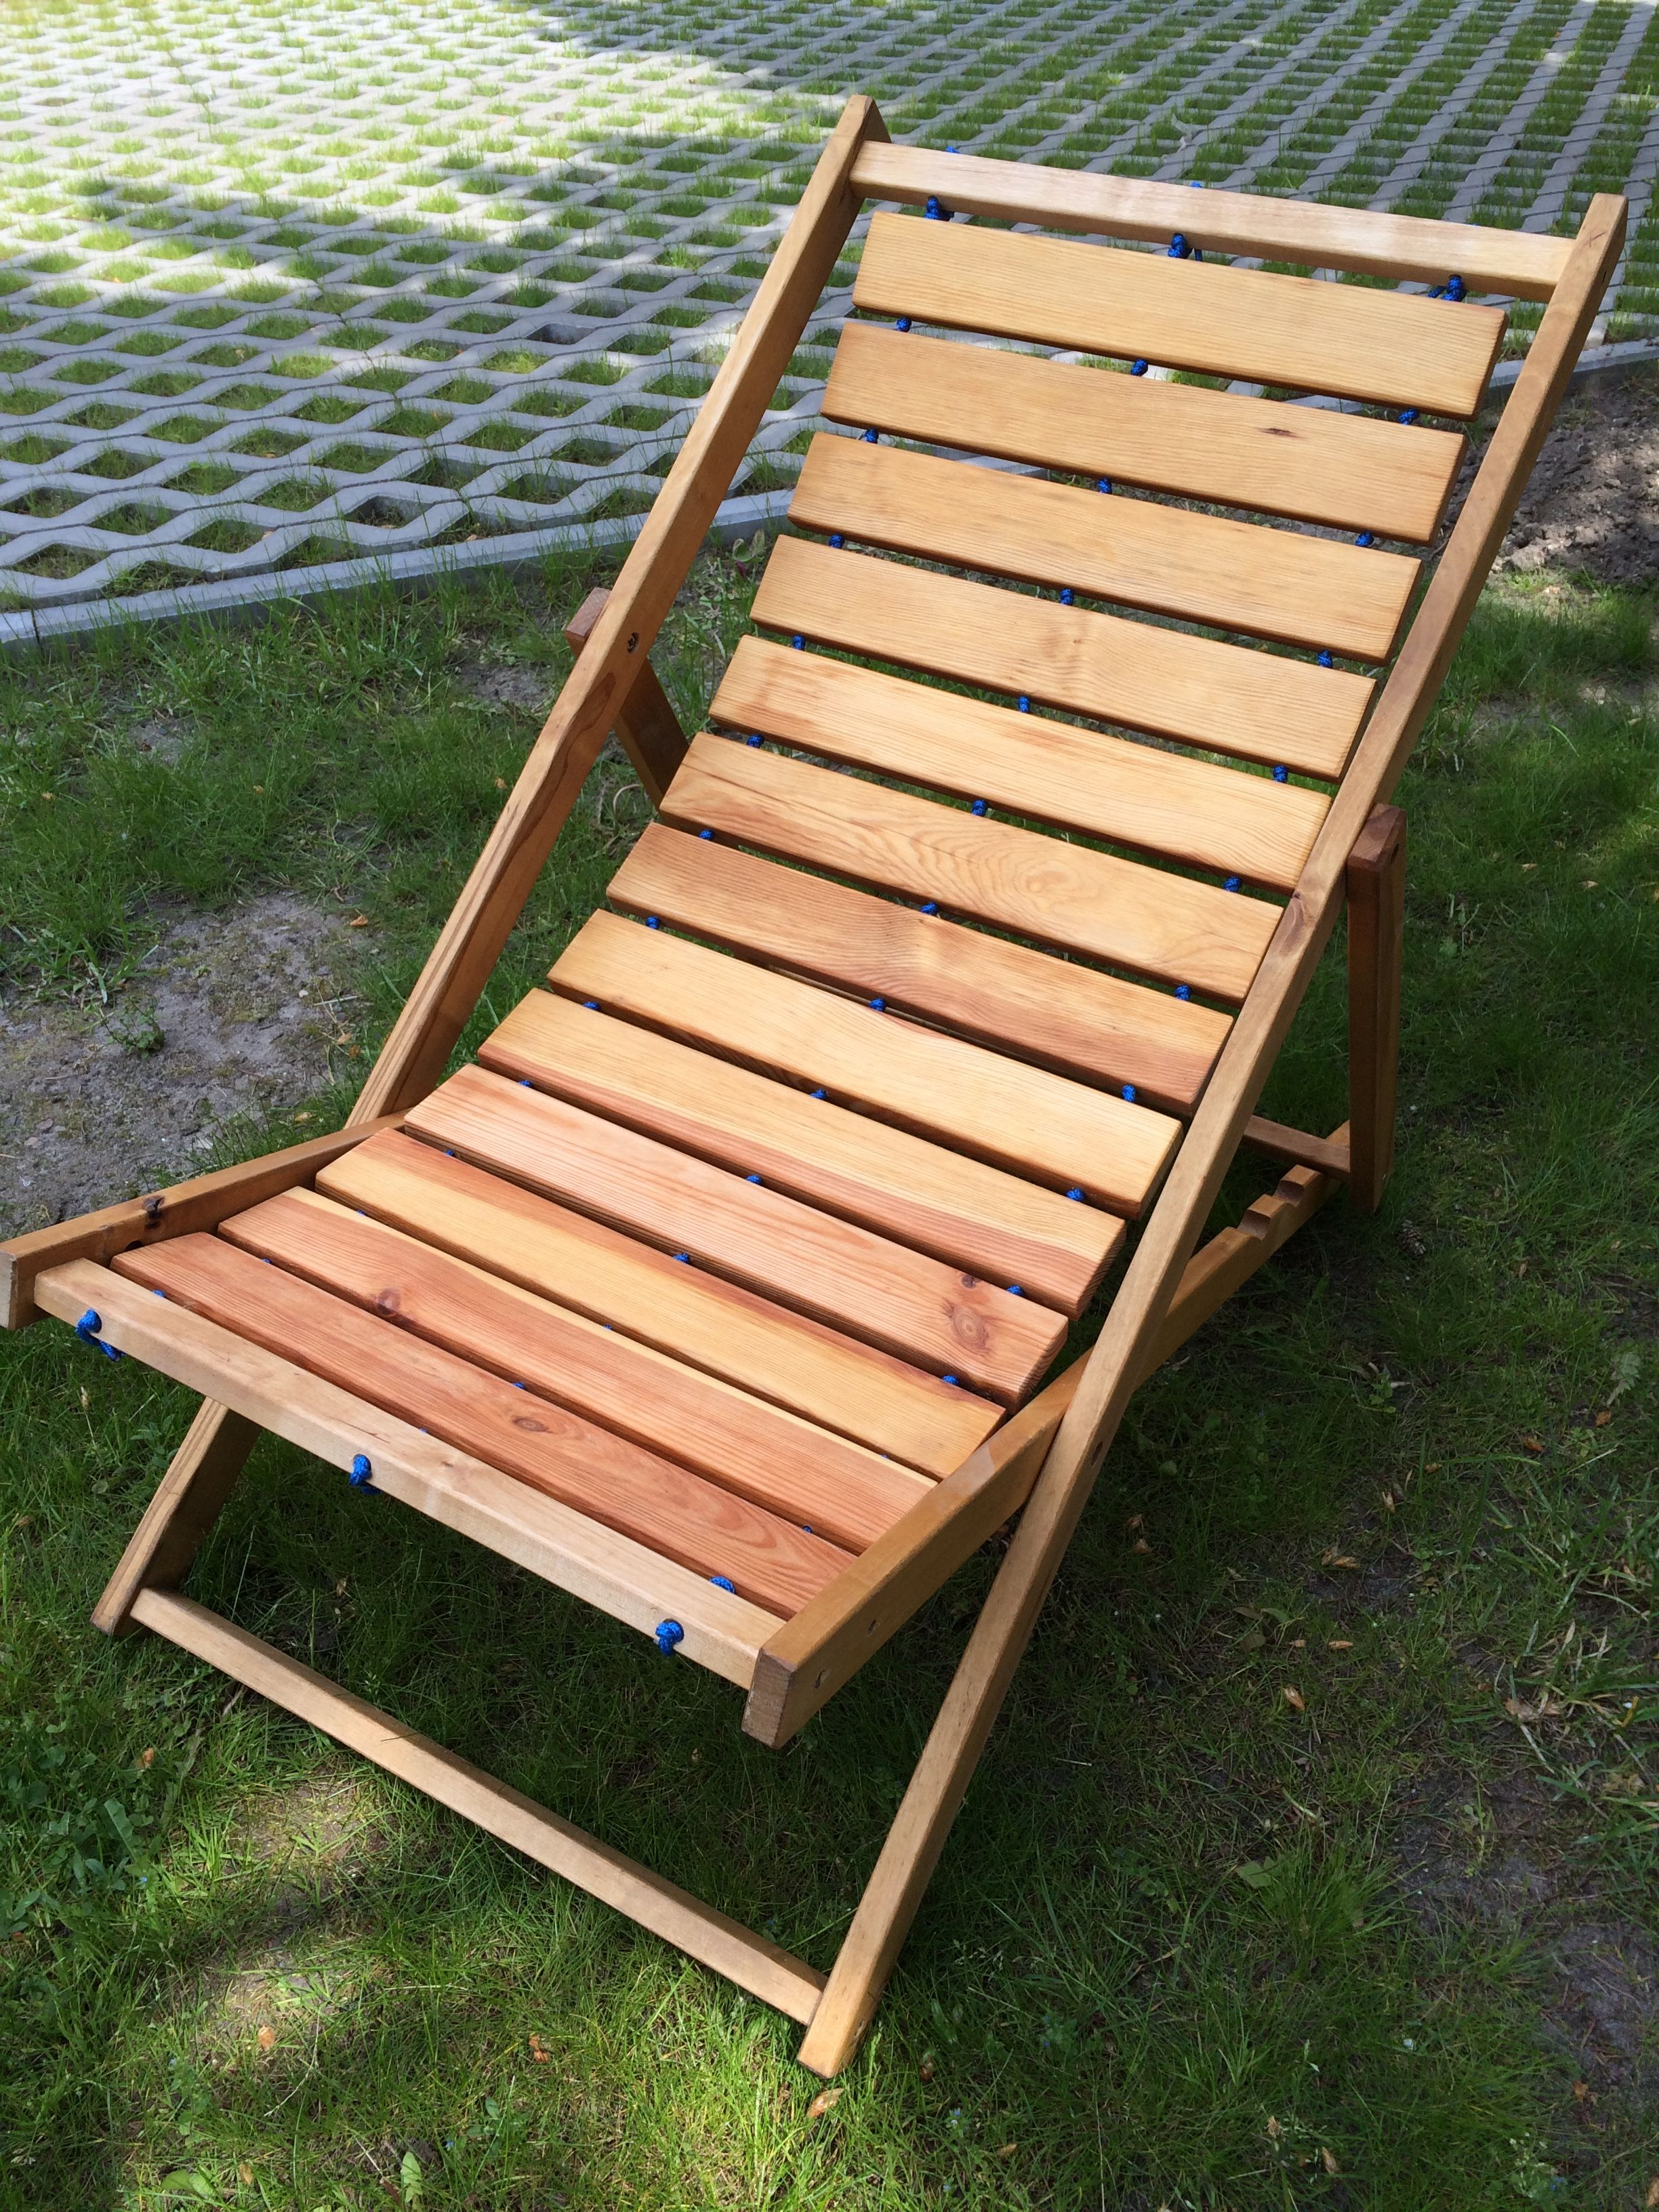 DIY scrapwood sunbed deck chair